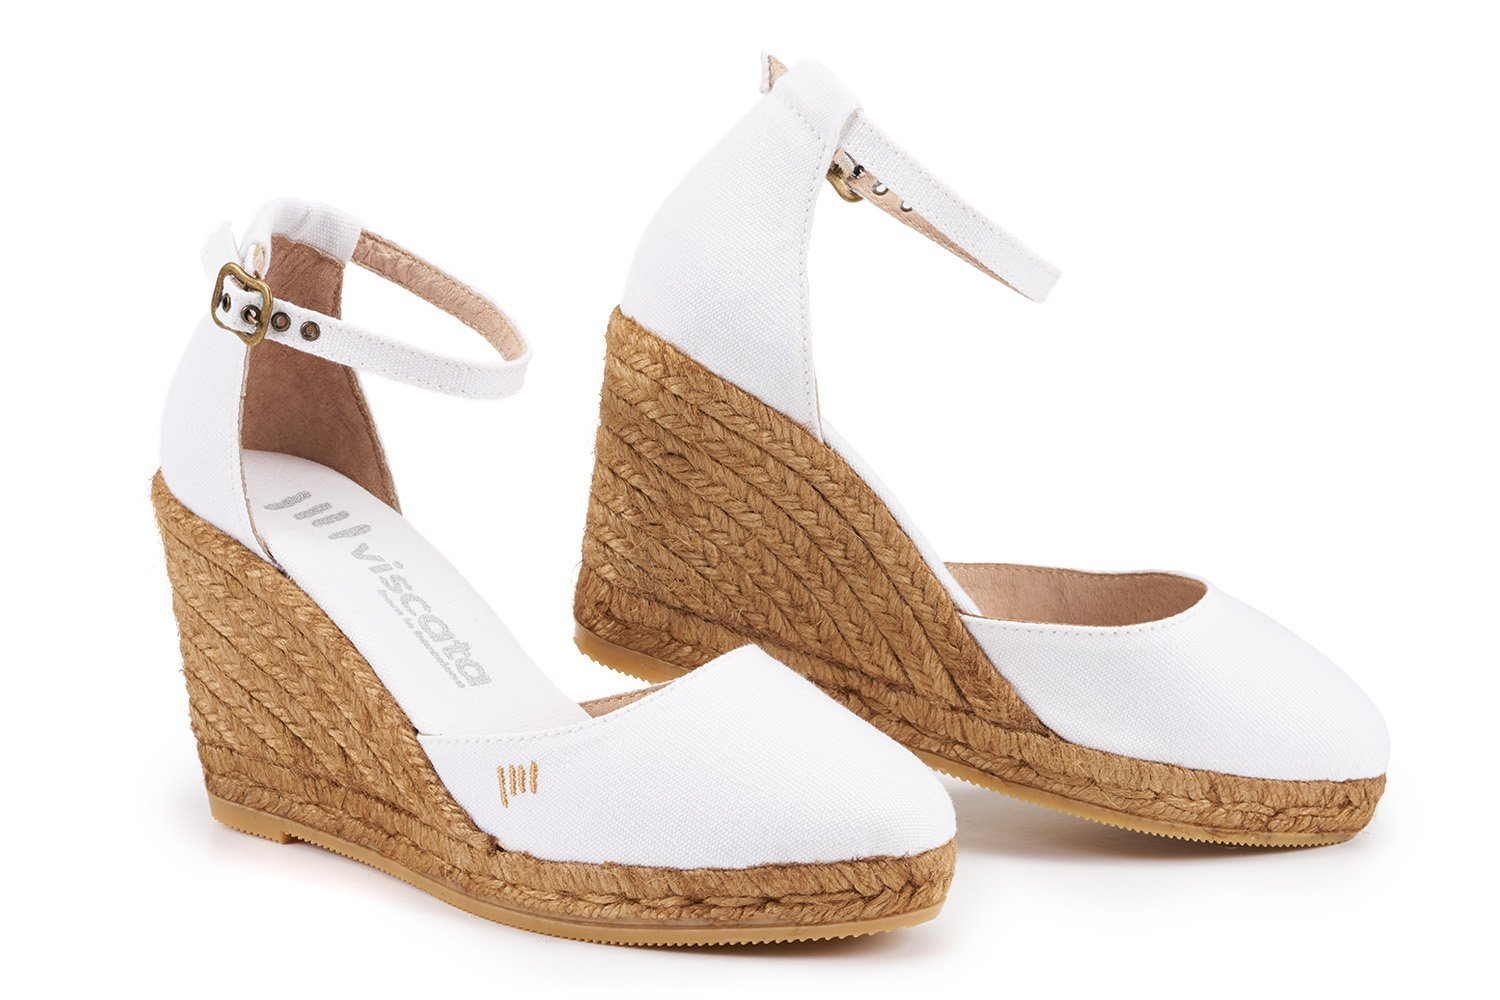 VISCATA Closed B01M22ZMO8 Estartit Elegant Comfort, Canvas, Ankle-Strap, 3-inch Closed Toe, Espadrilles with 3-inch Heel Made in Spain Blanc 5e53351 - automaticcouplings.space